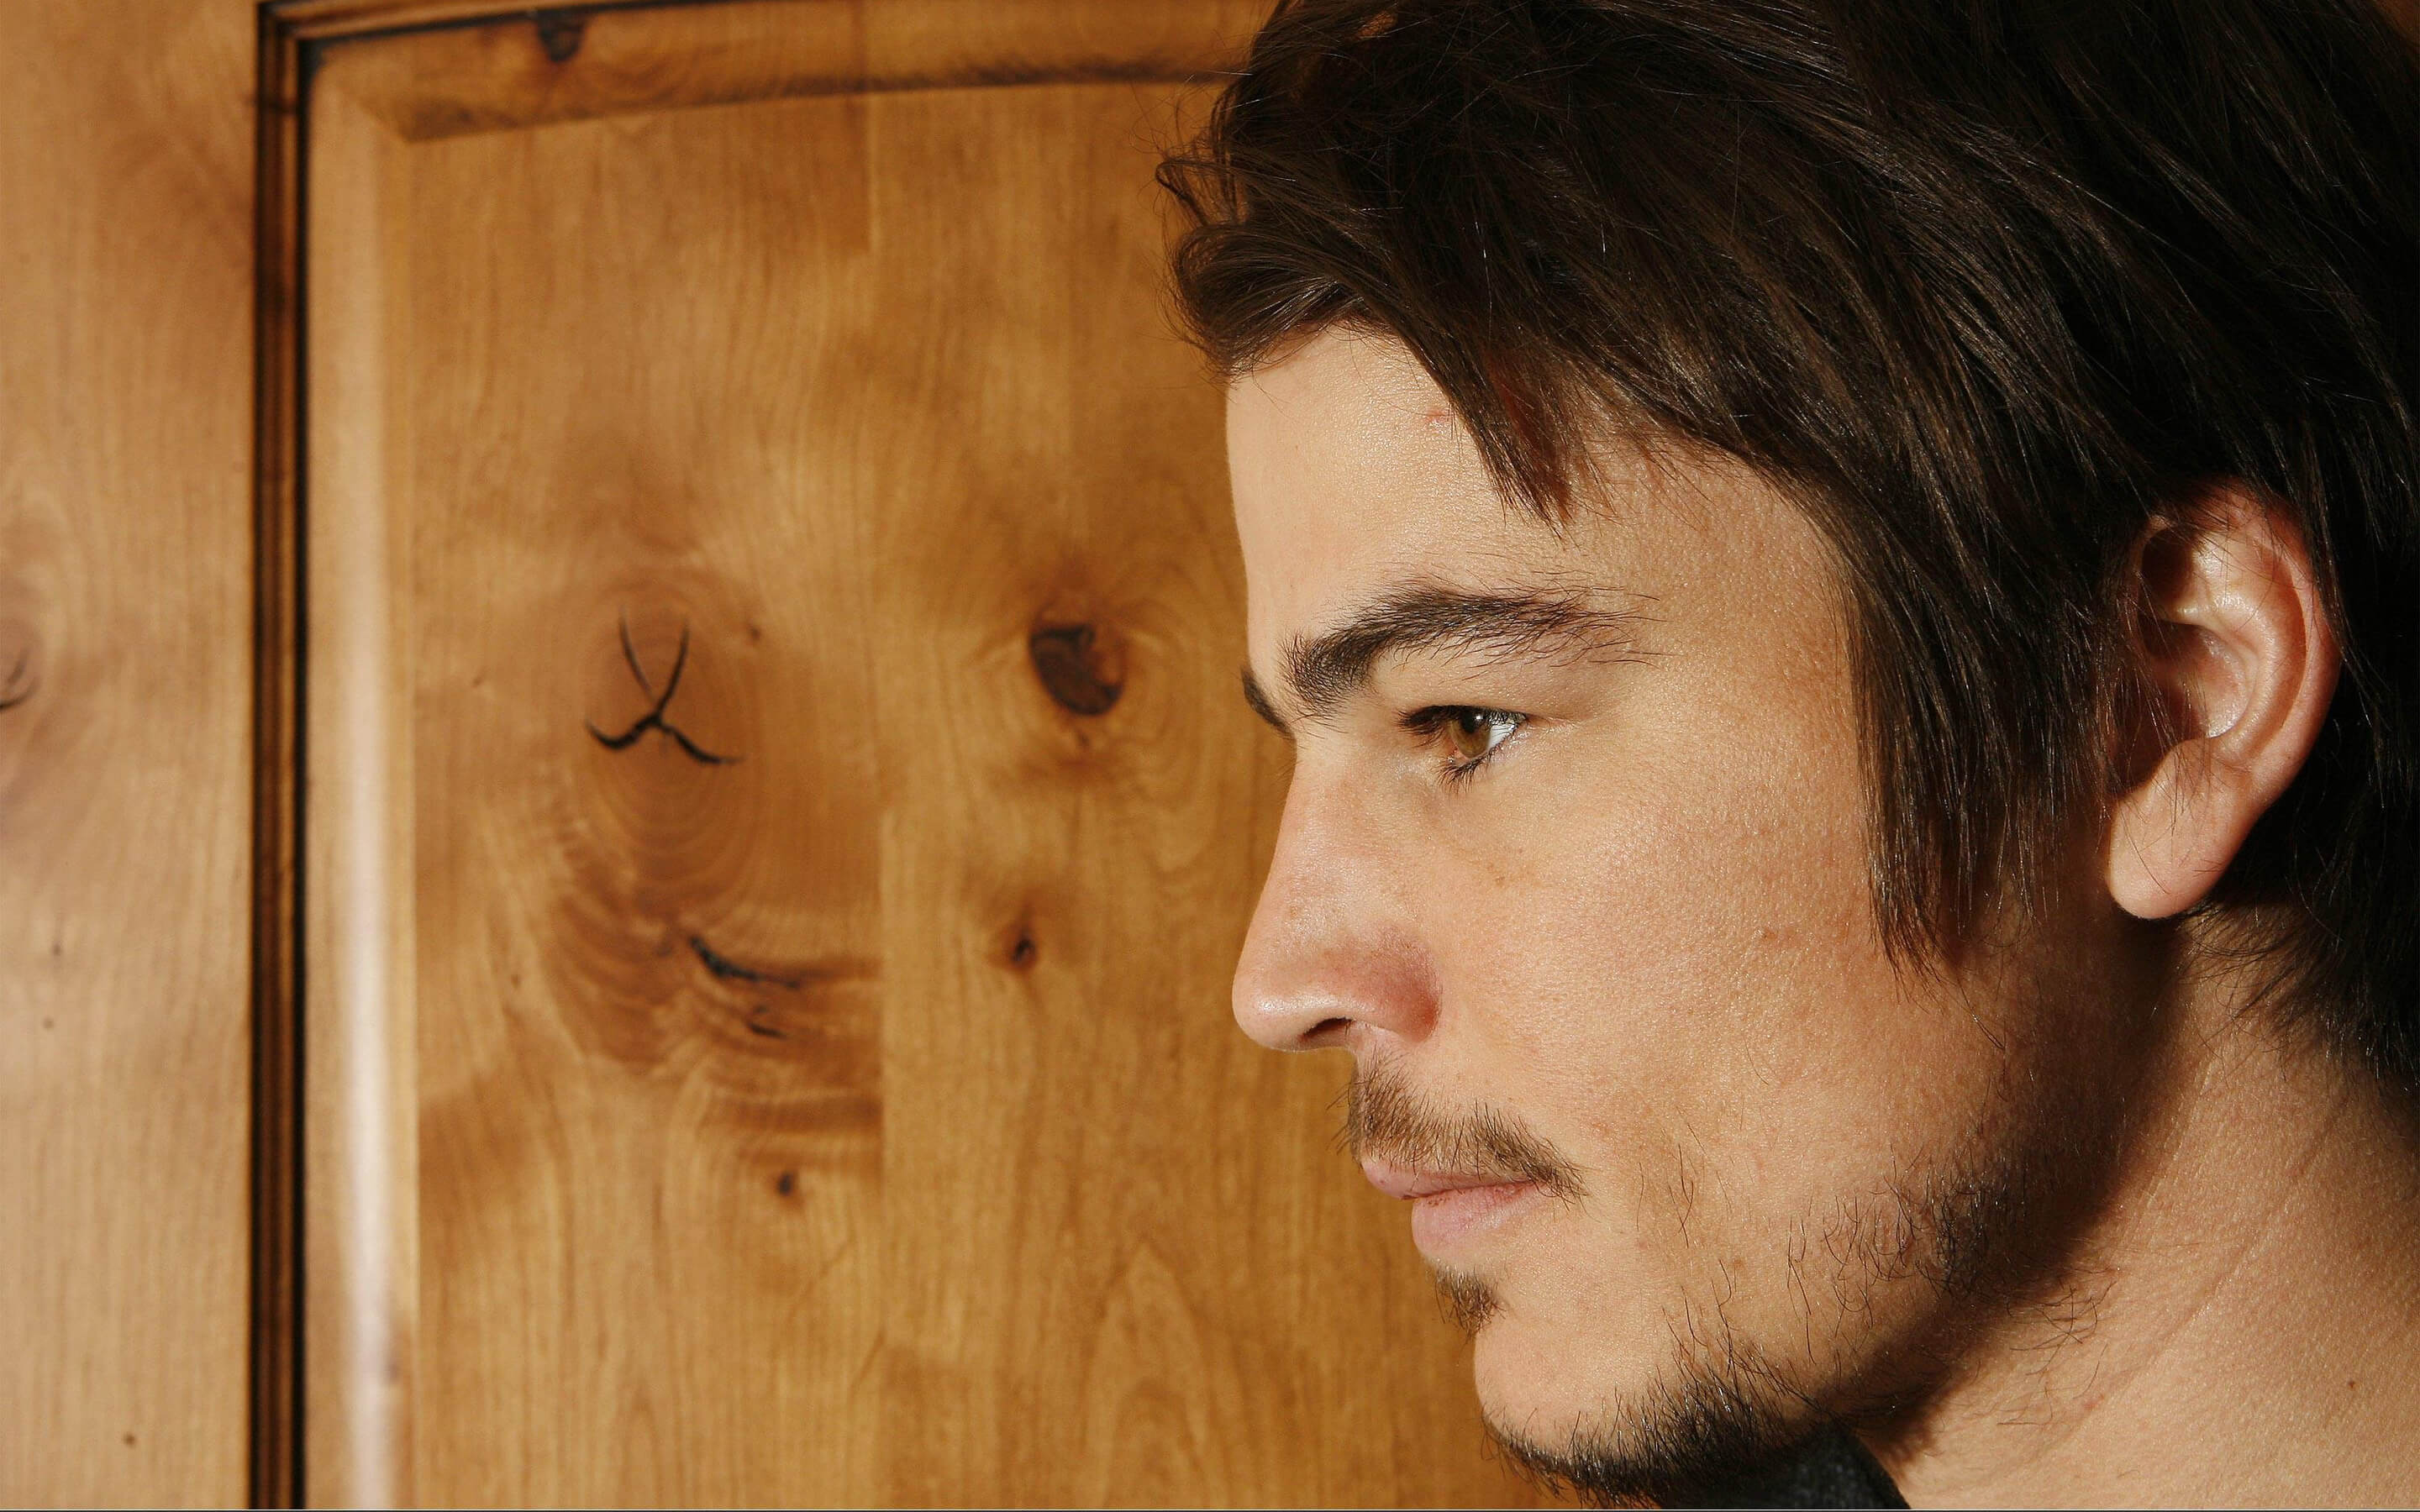 josh hartnett face hd wallpaper 65751